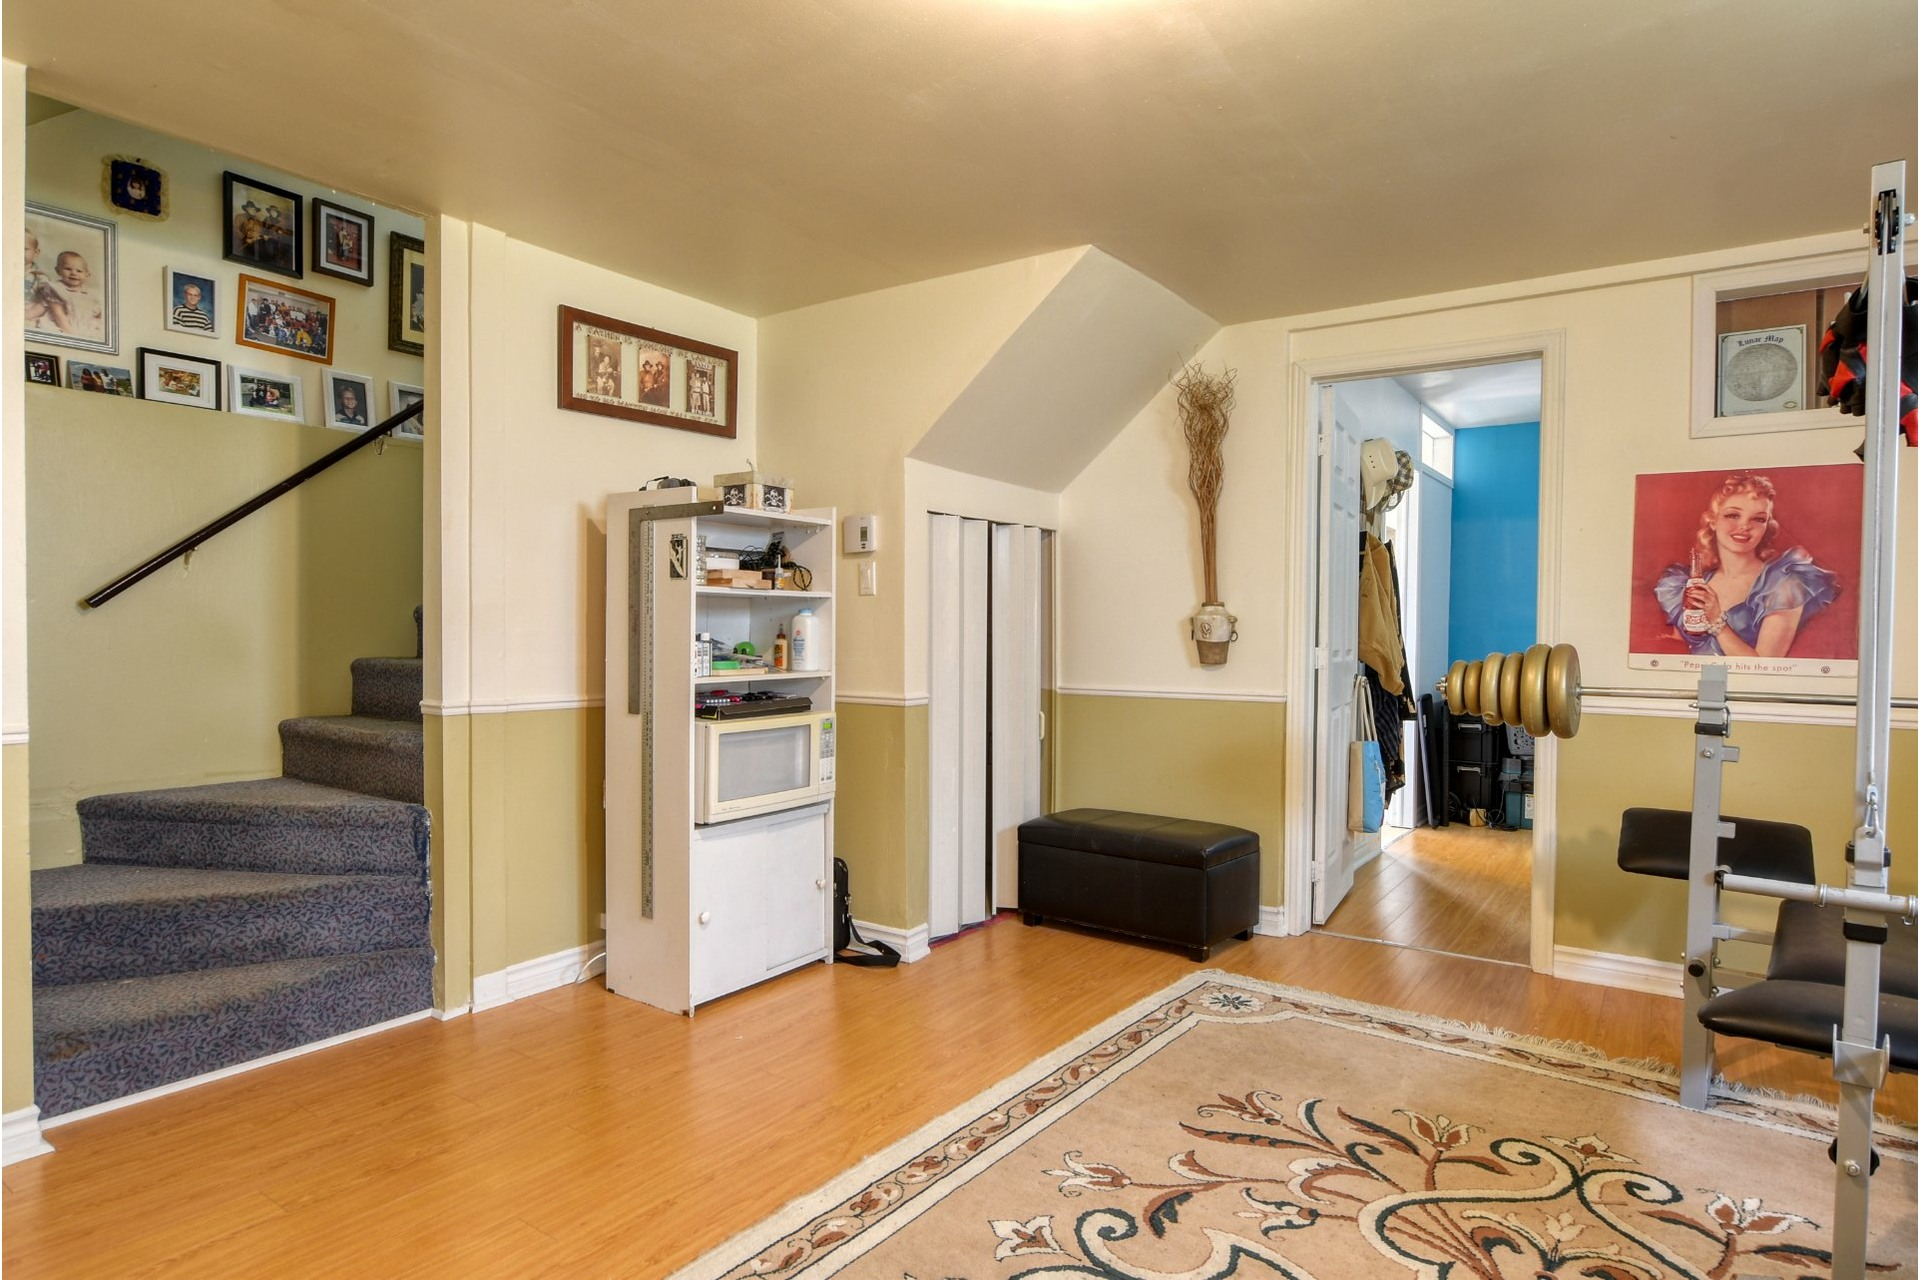 image 15 - House For sale Pointe-Claire - 8 rooms